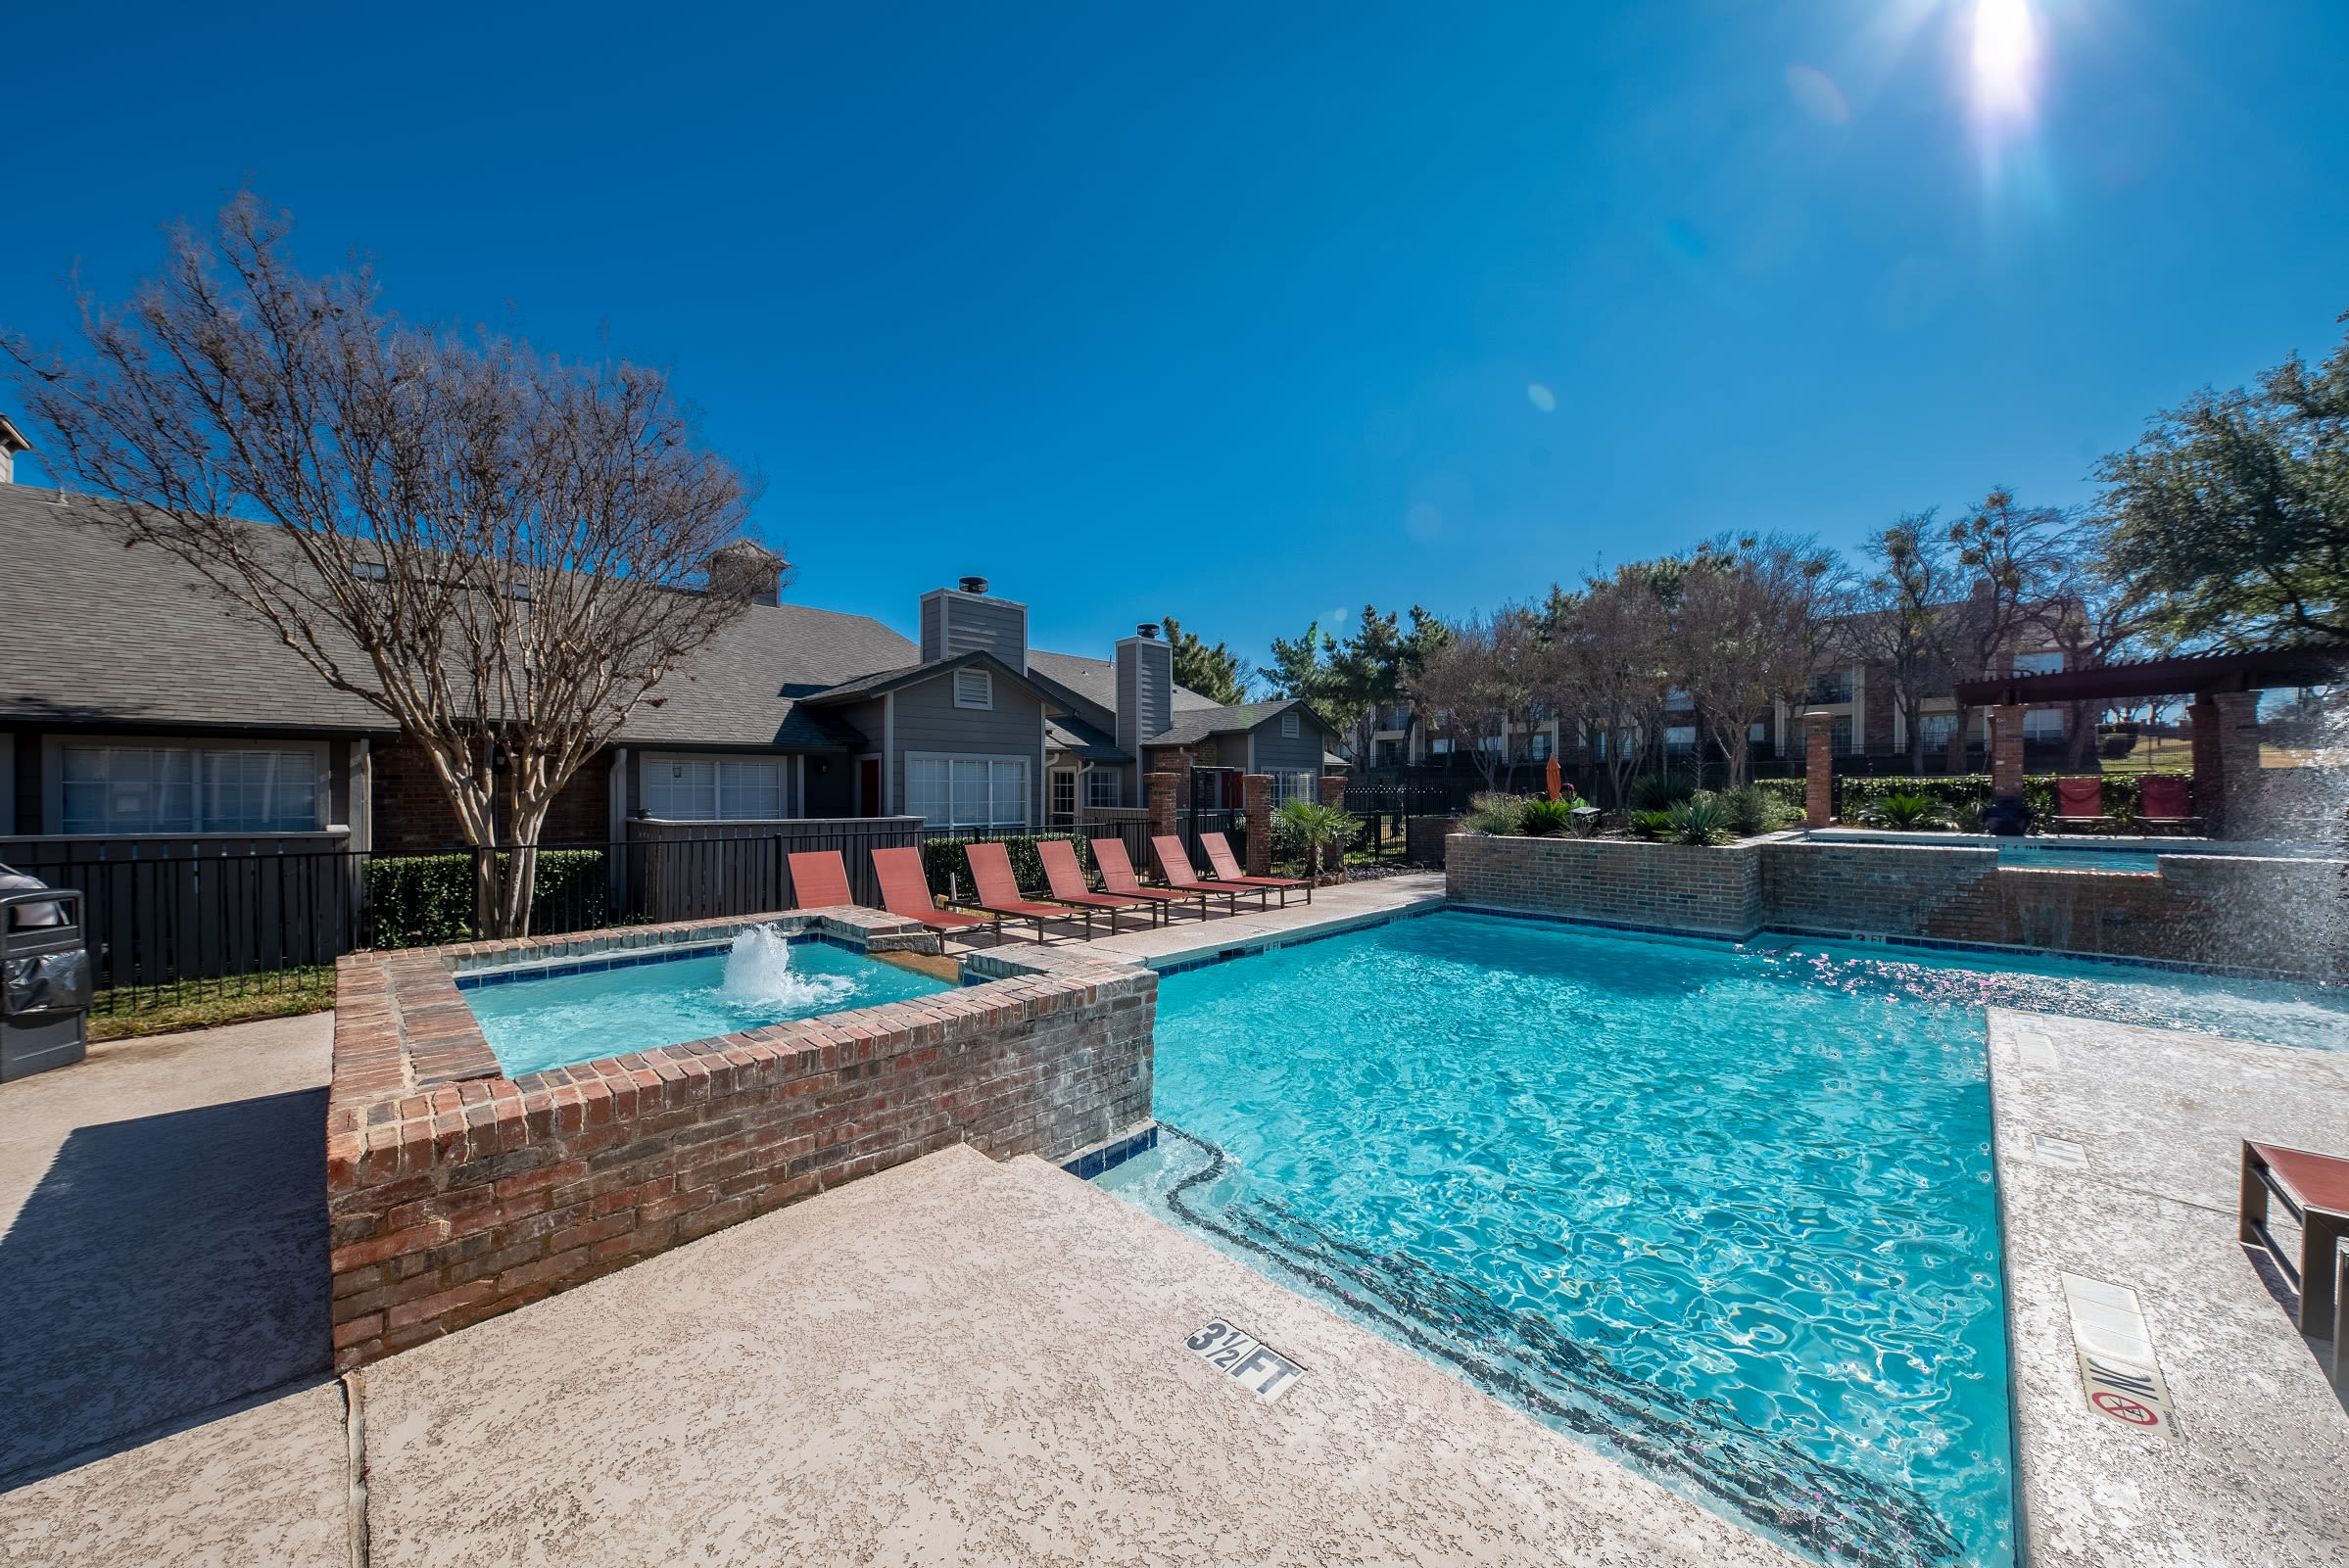 Sunny pool view at Village Green of Bear Creek in Euless, Texas